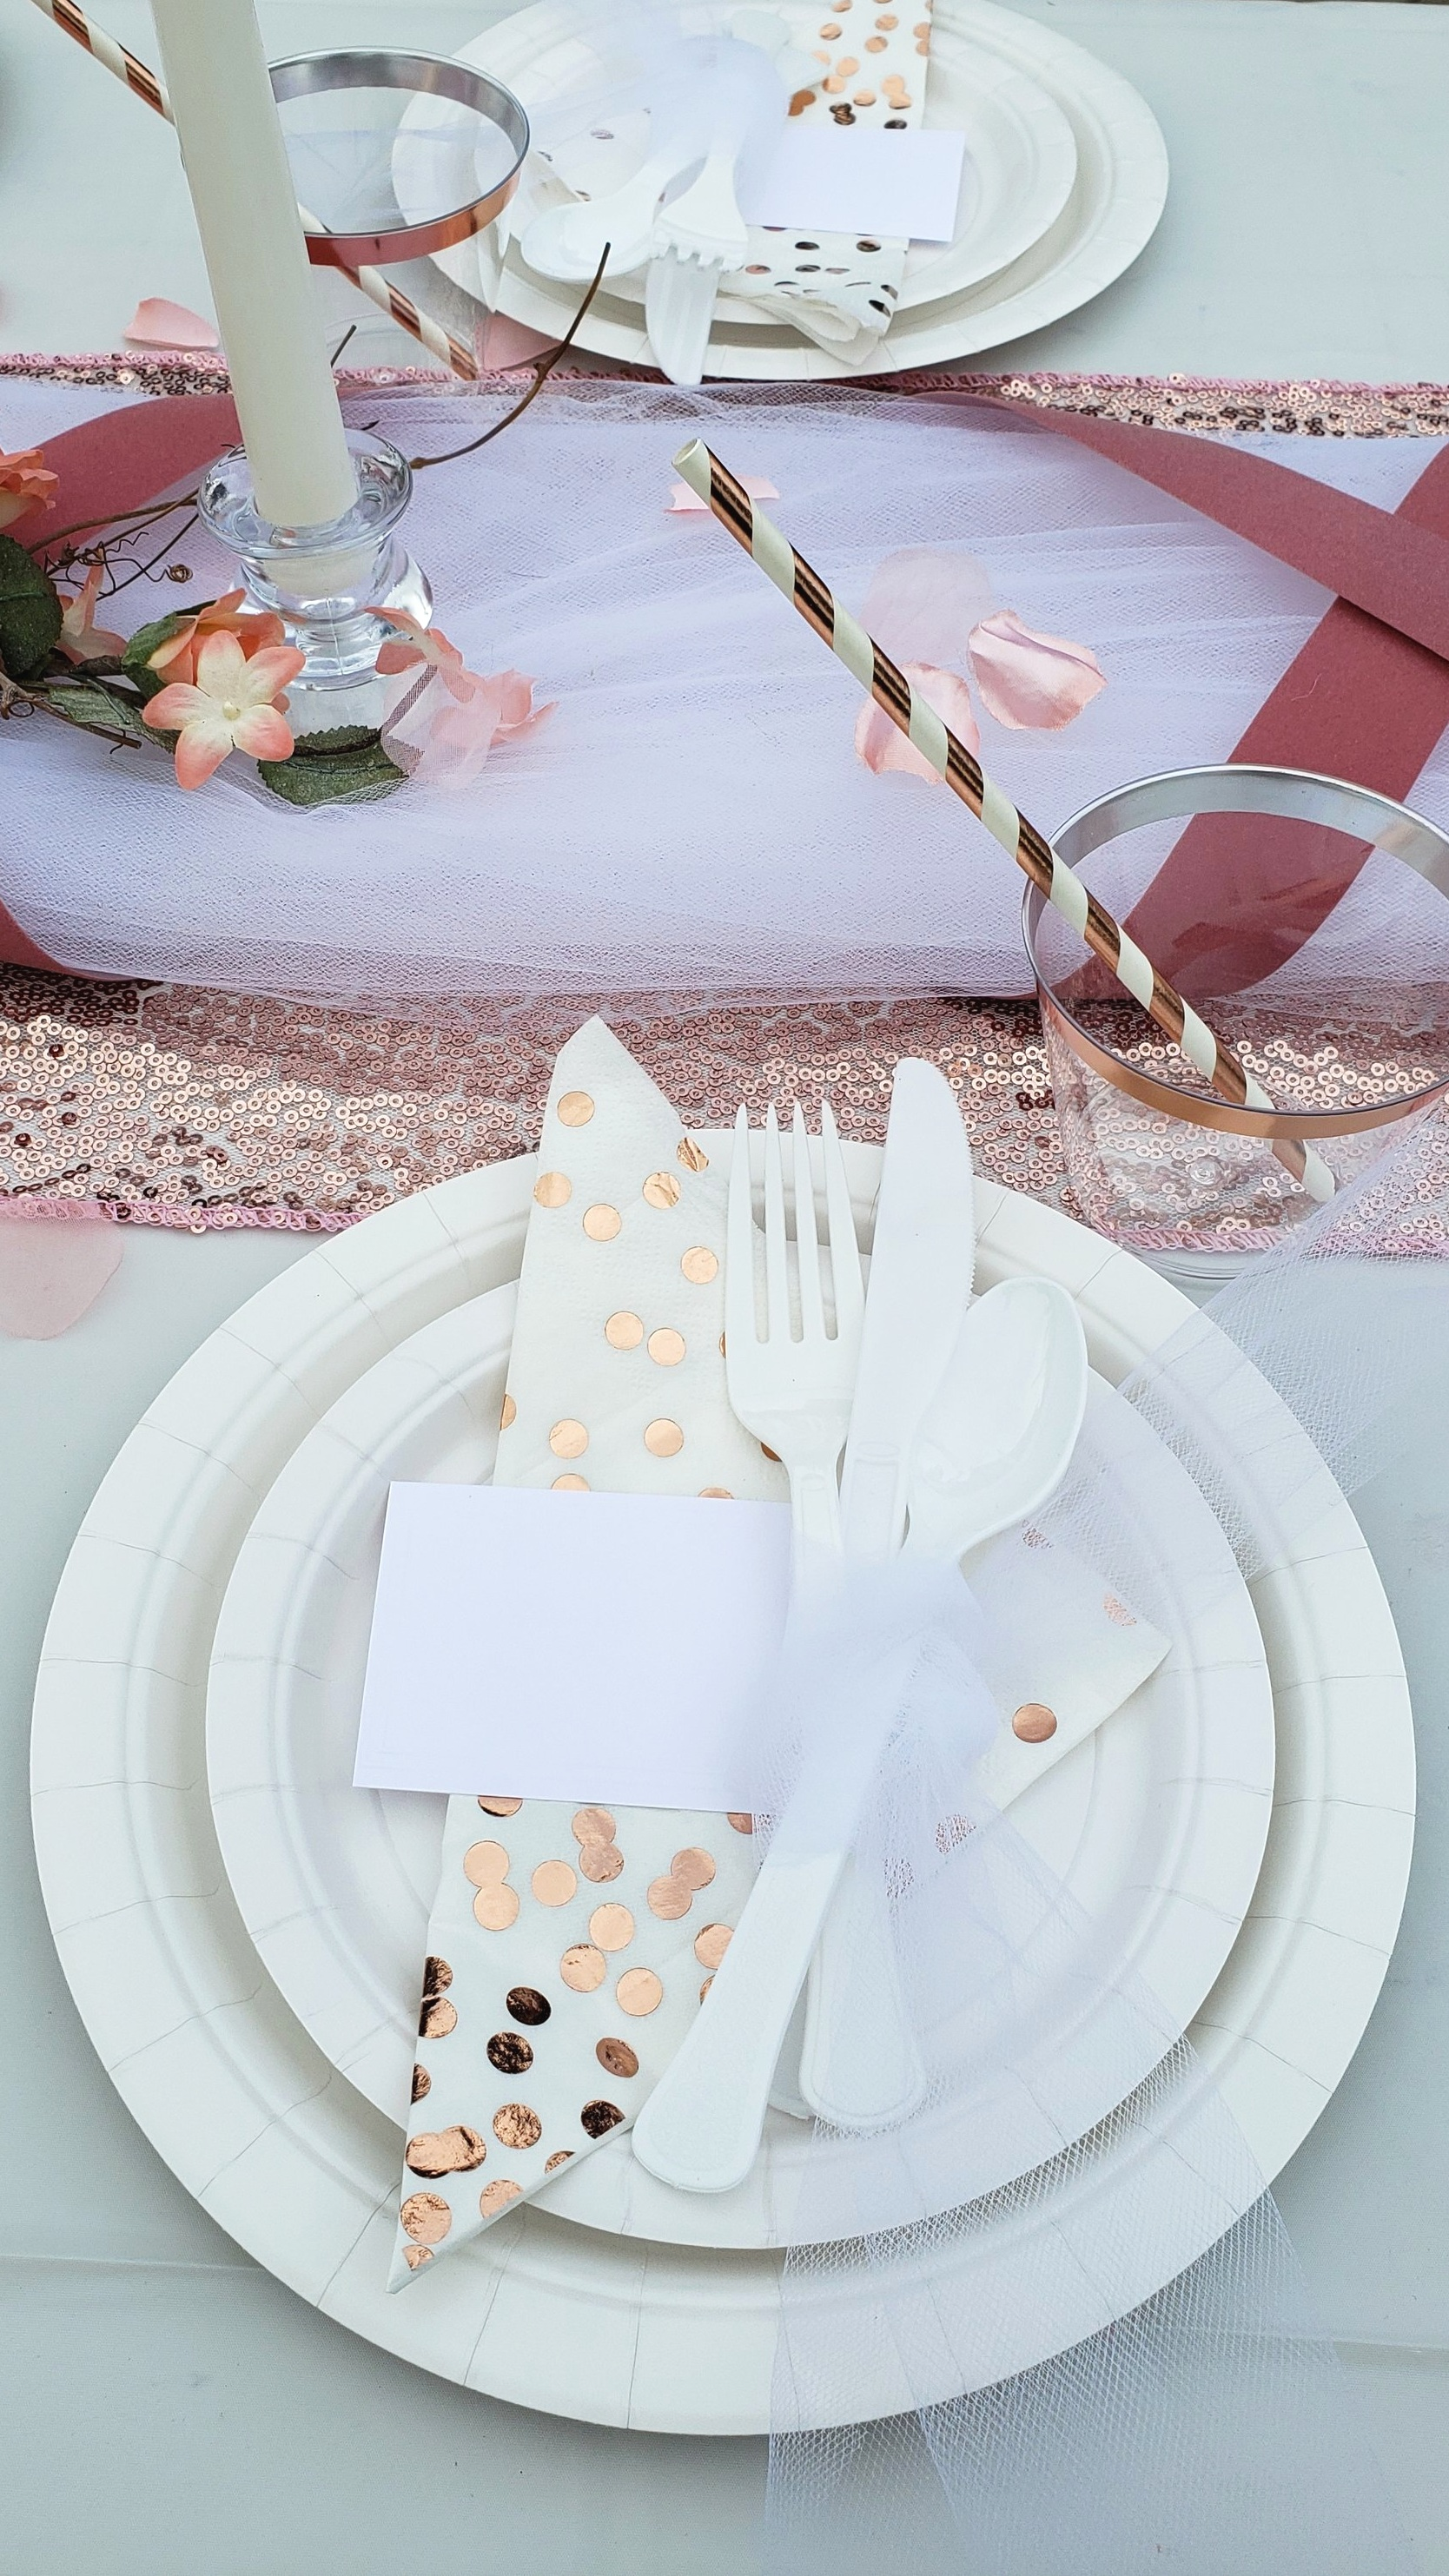 Wrap tulle around cutlery and tuck a place card under for added elegance.